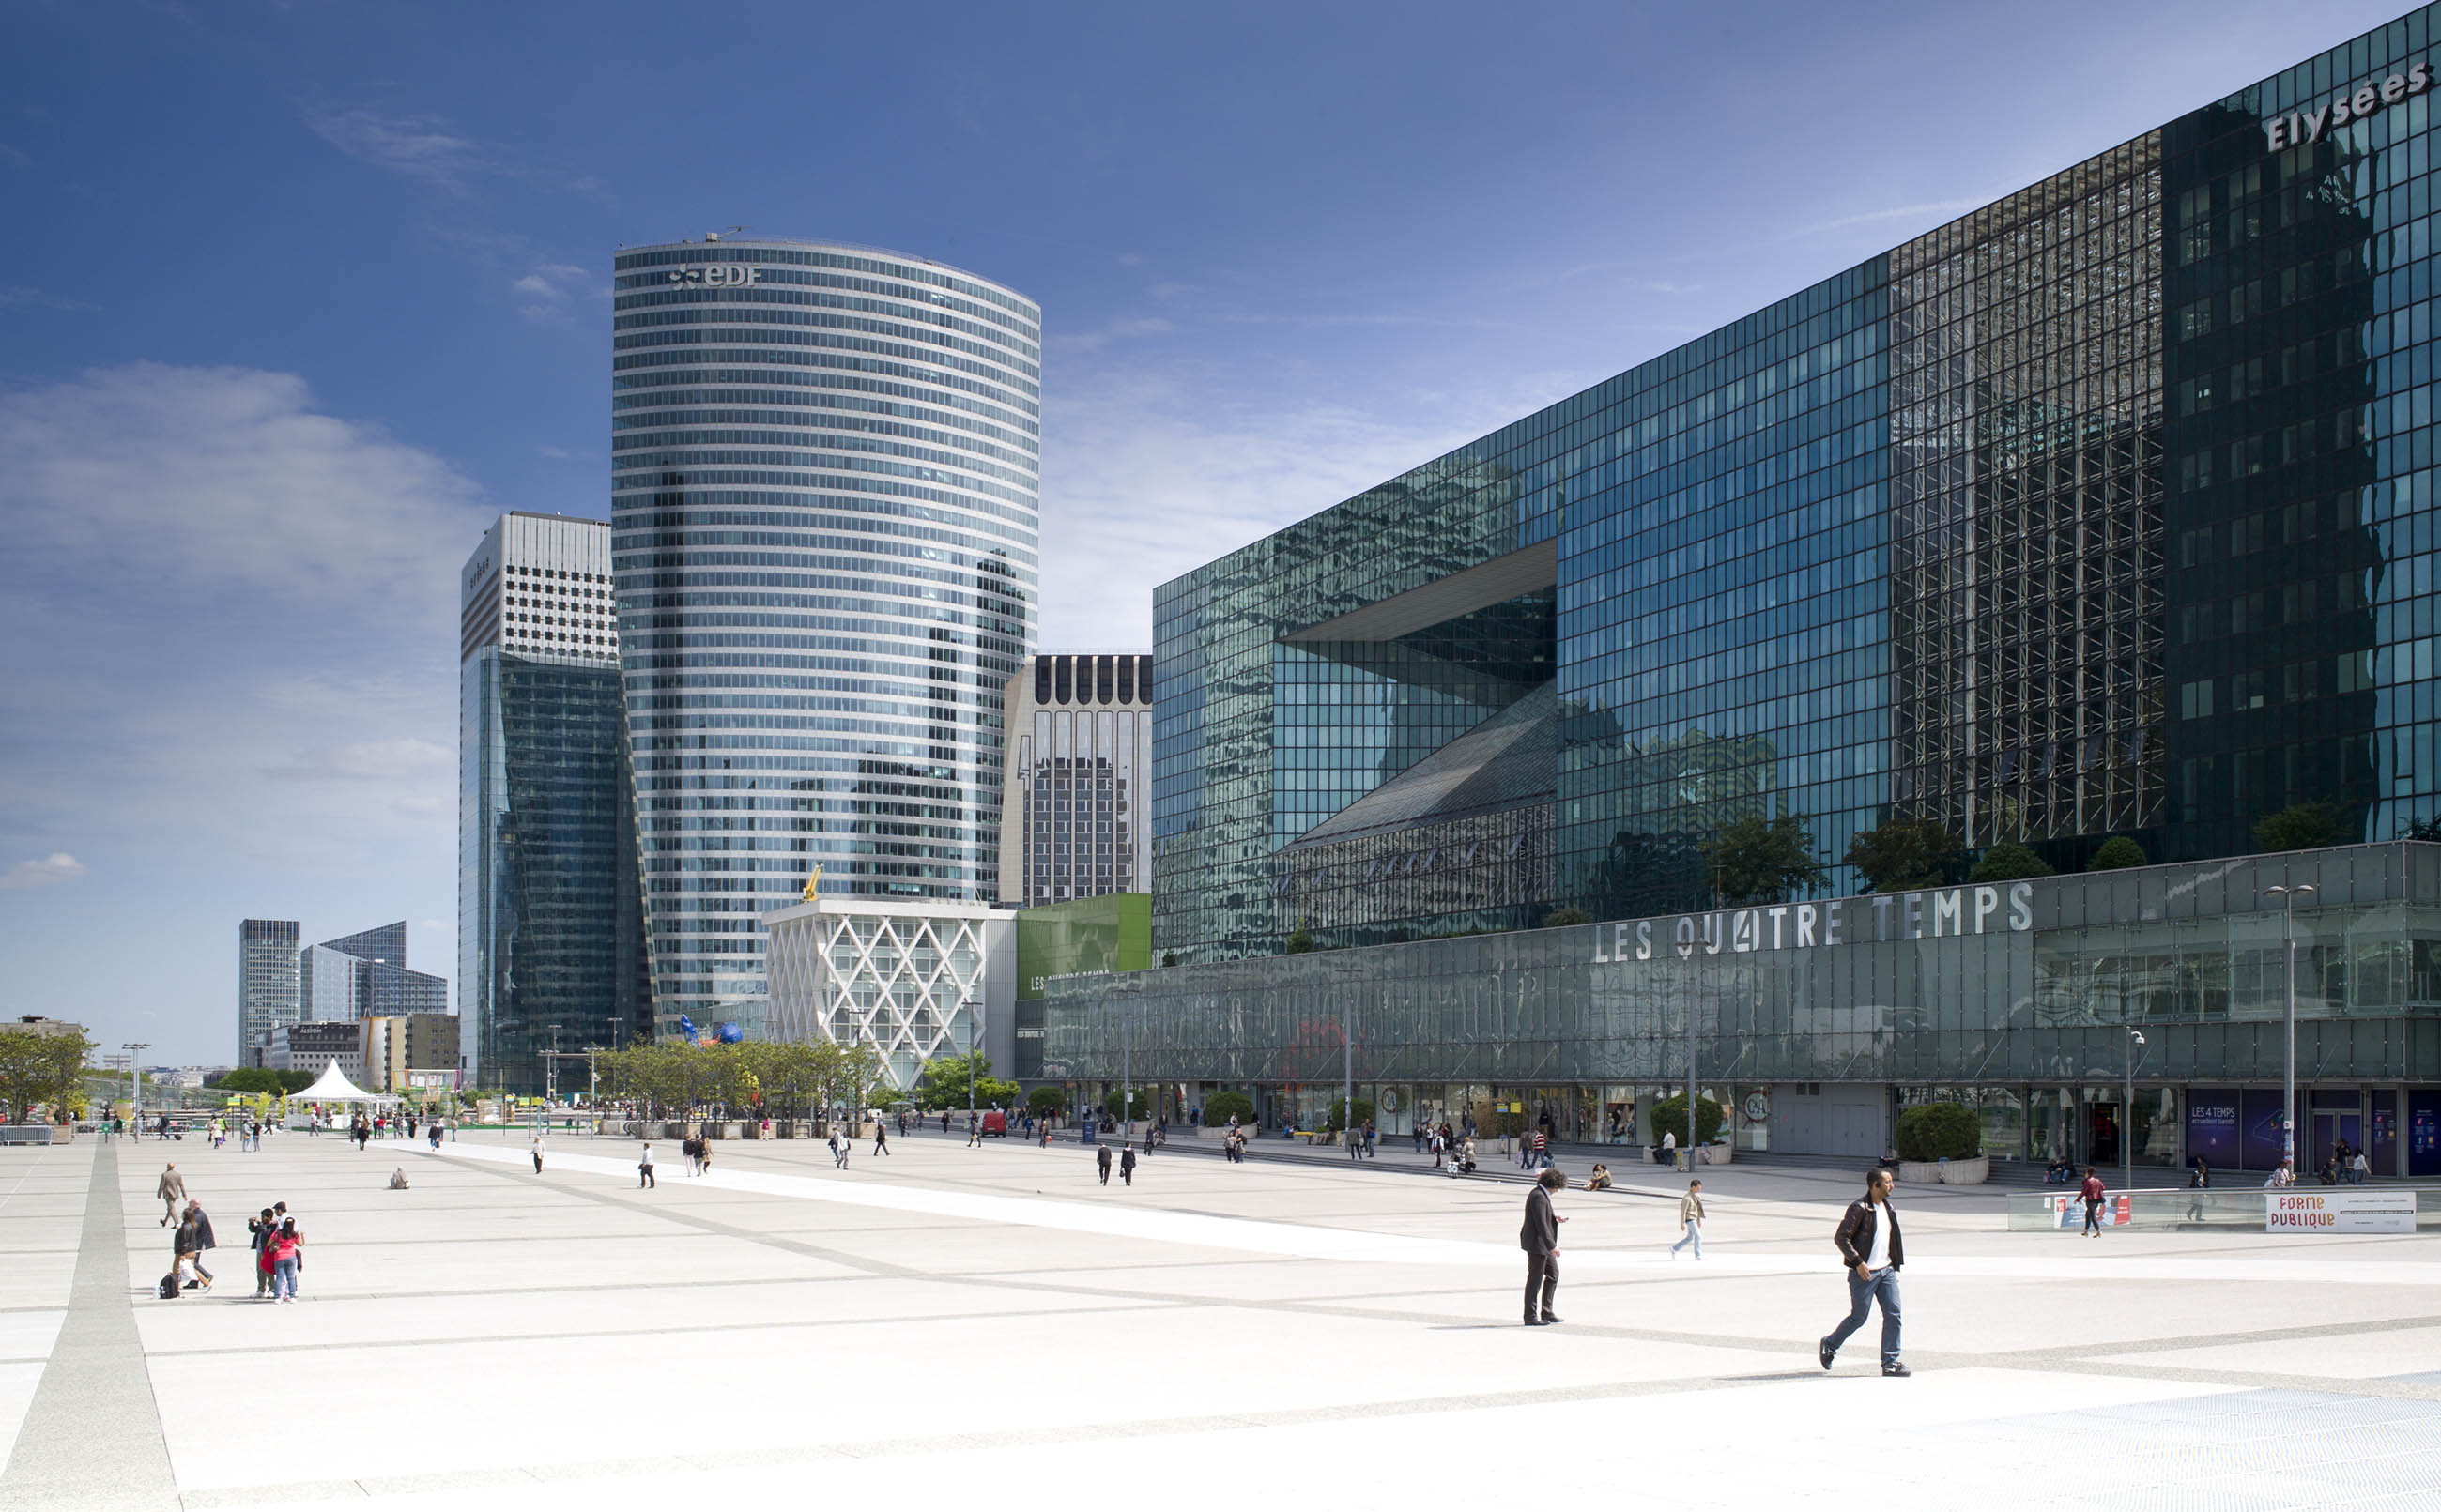 Architectural Photography, La Défense, Paris by Andrew Butler - Exeter, Devon